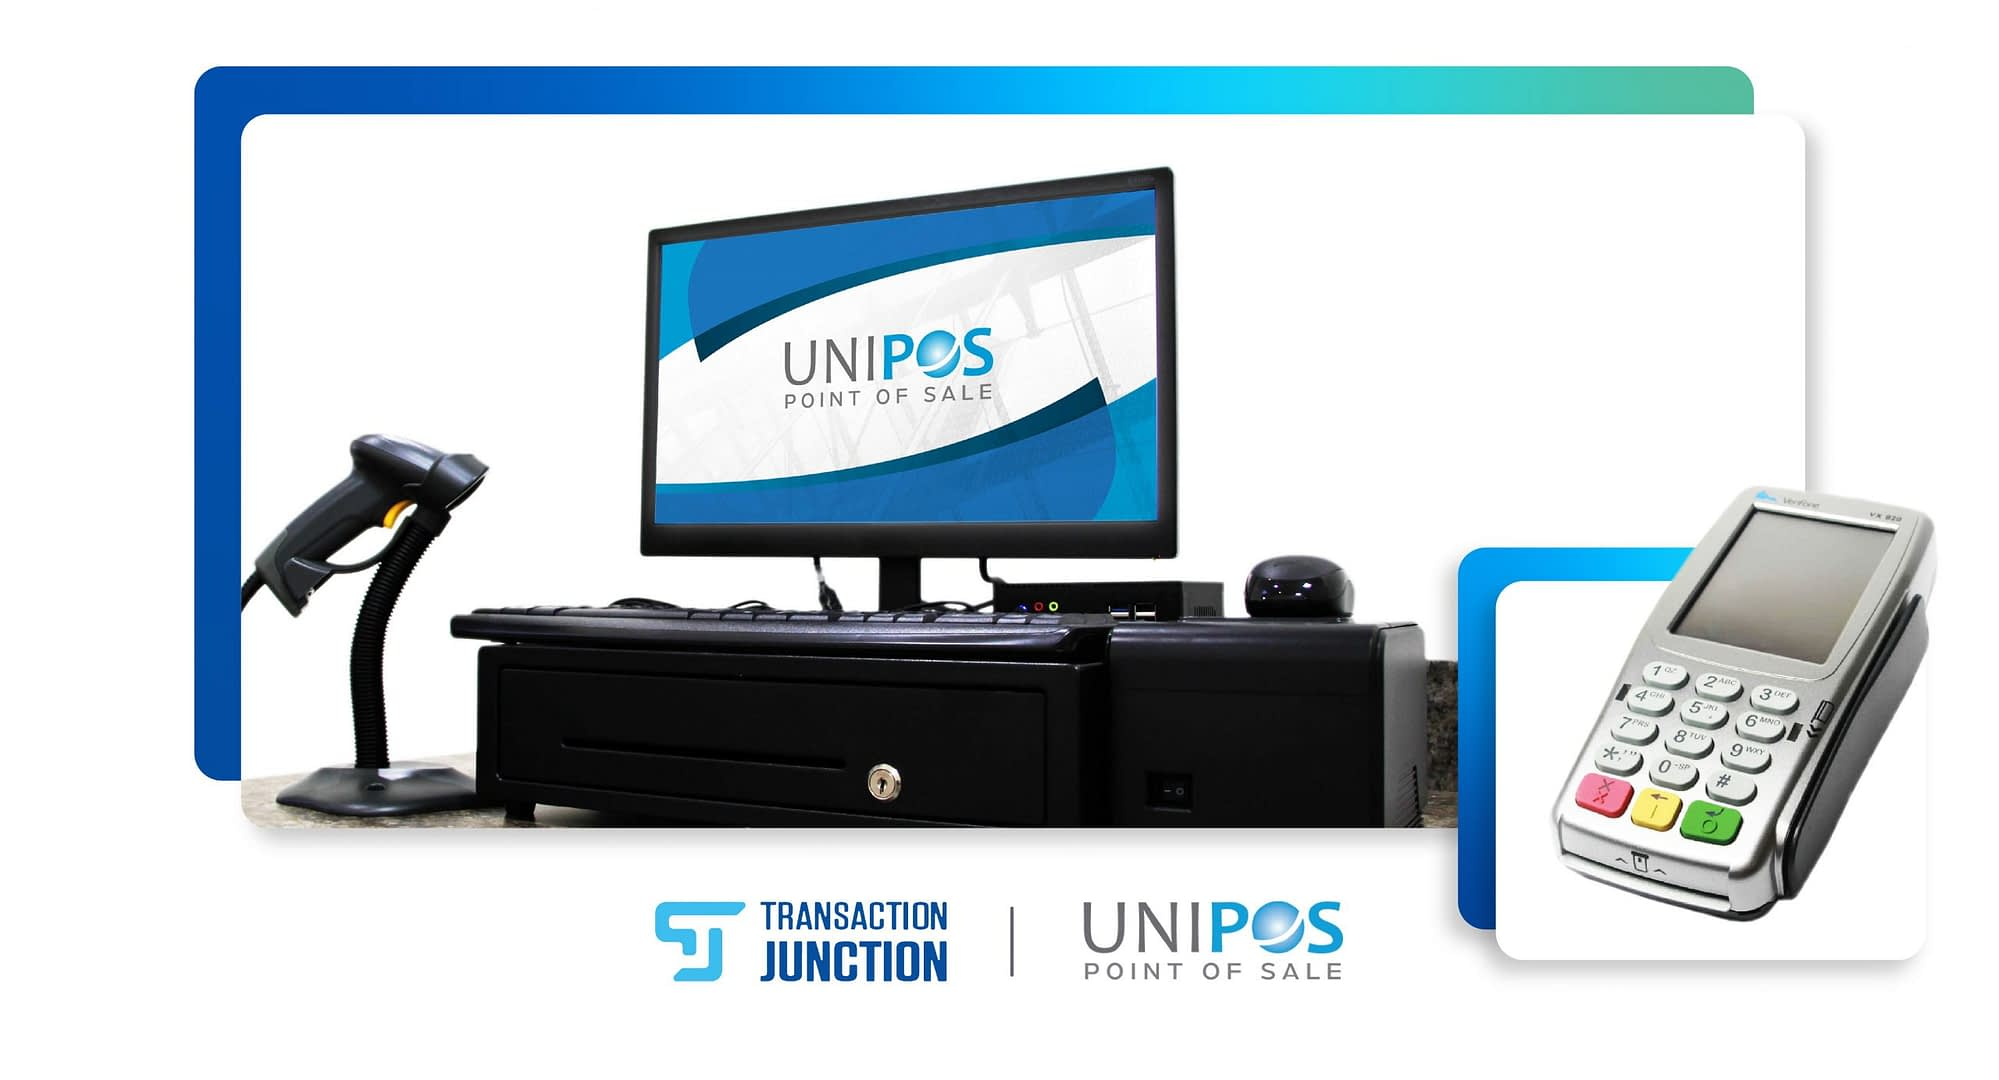 Unipos Point of Sale